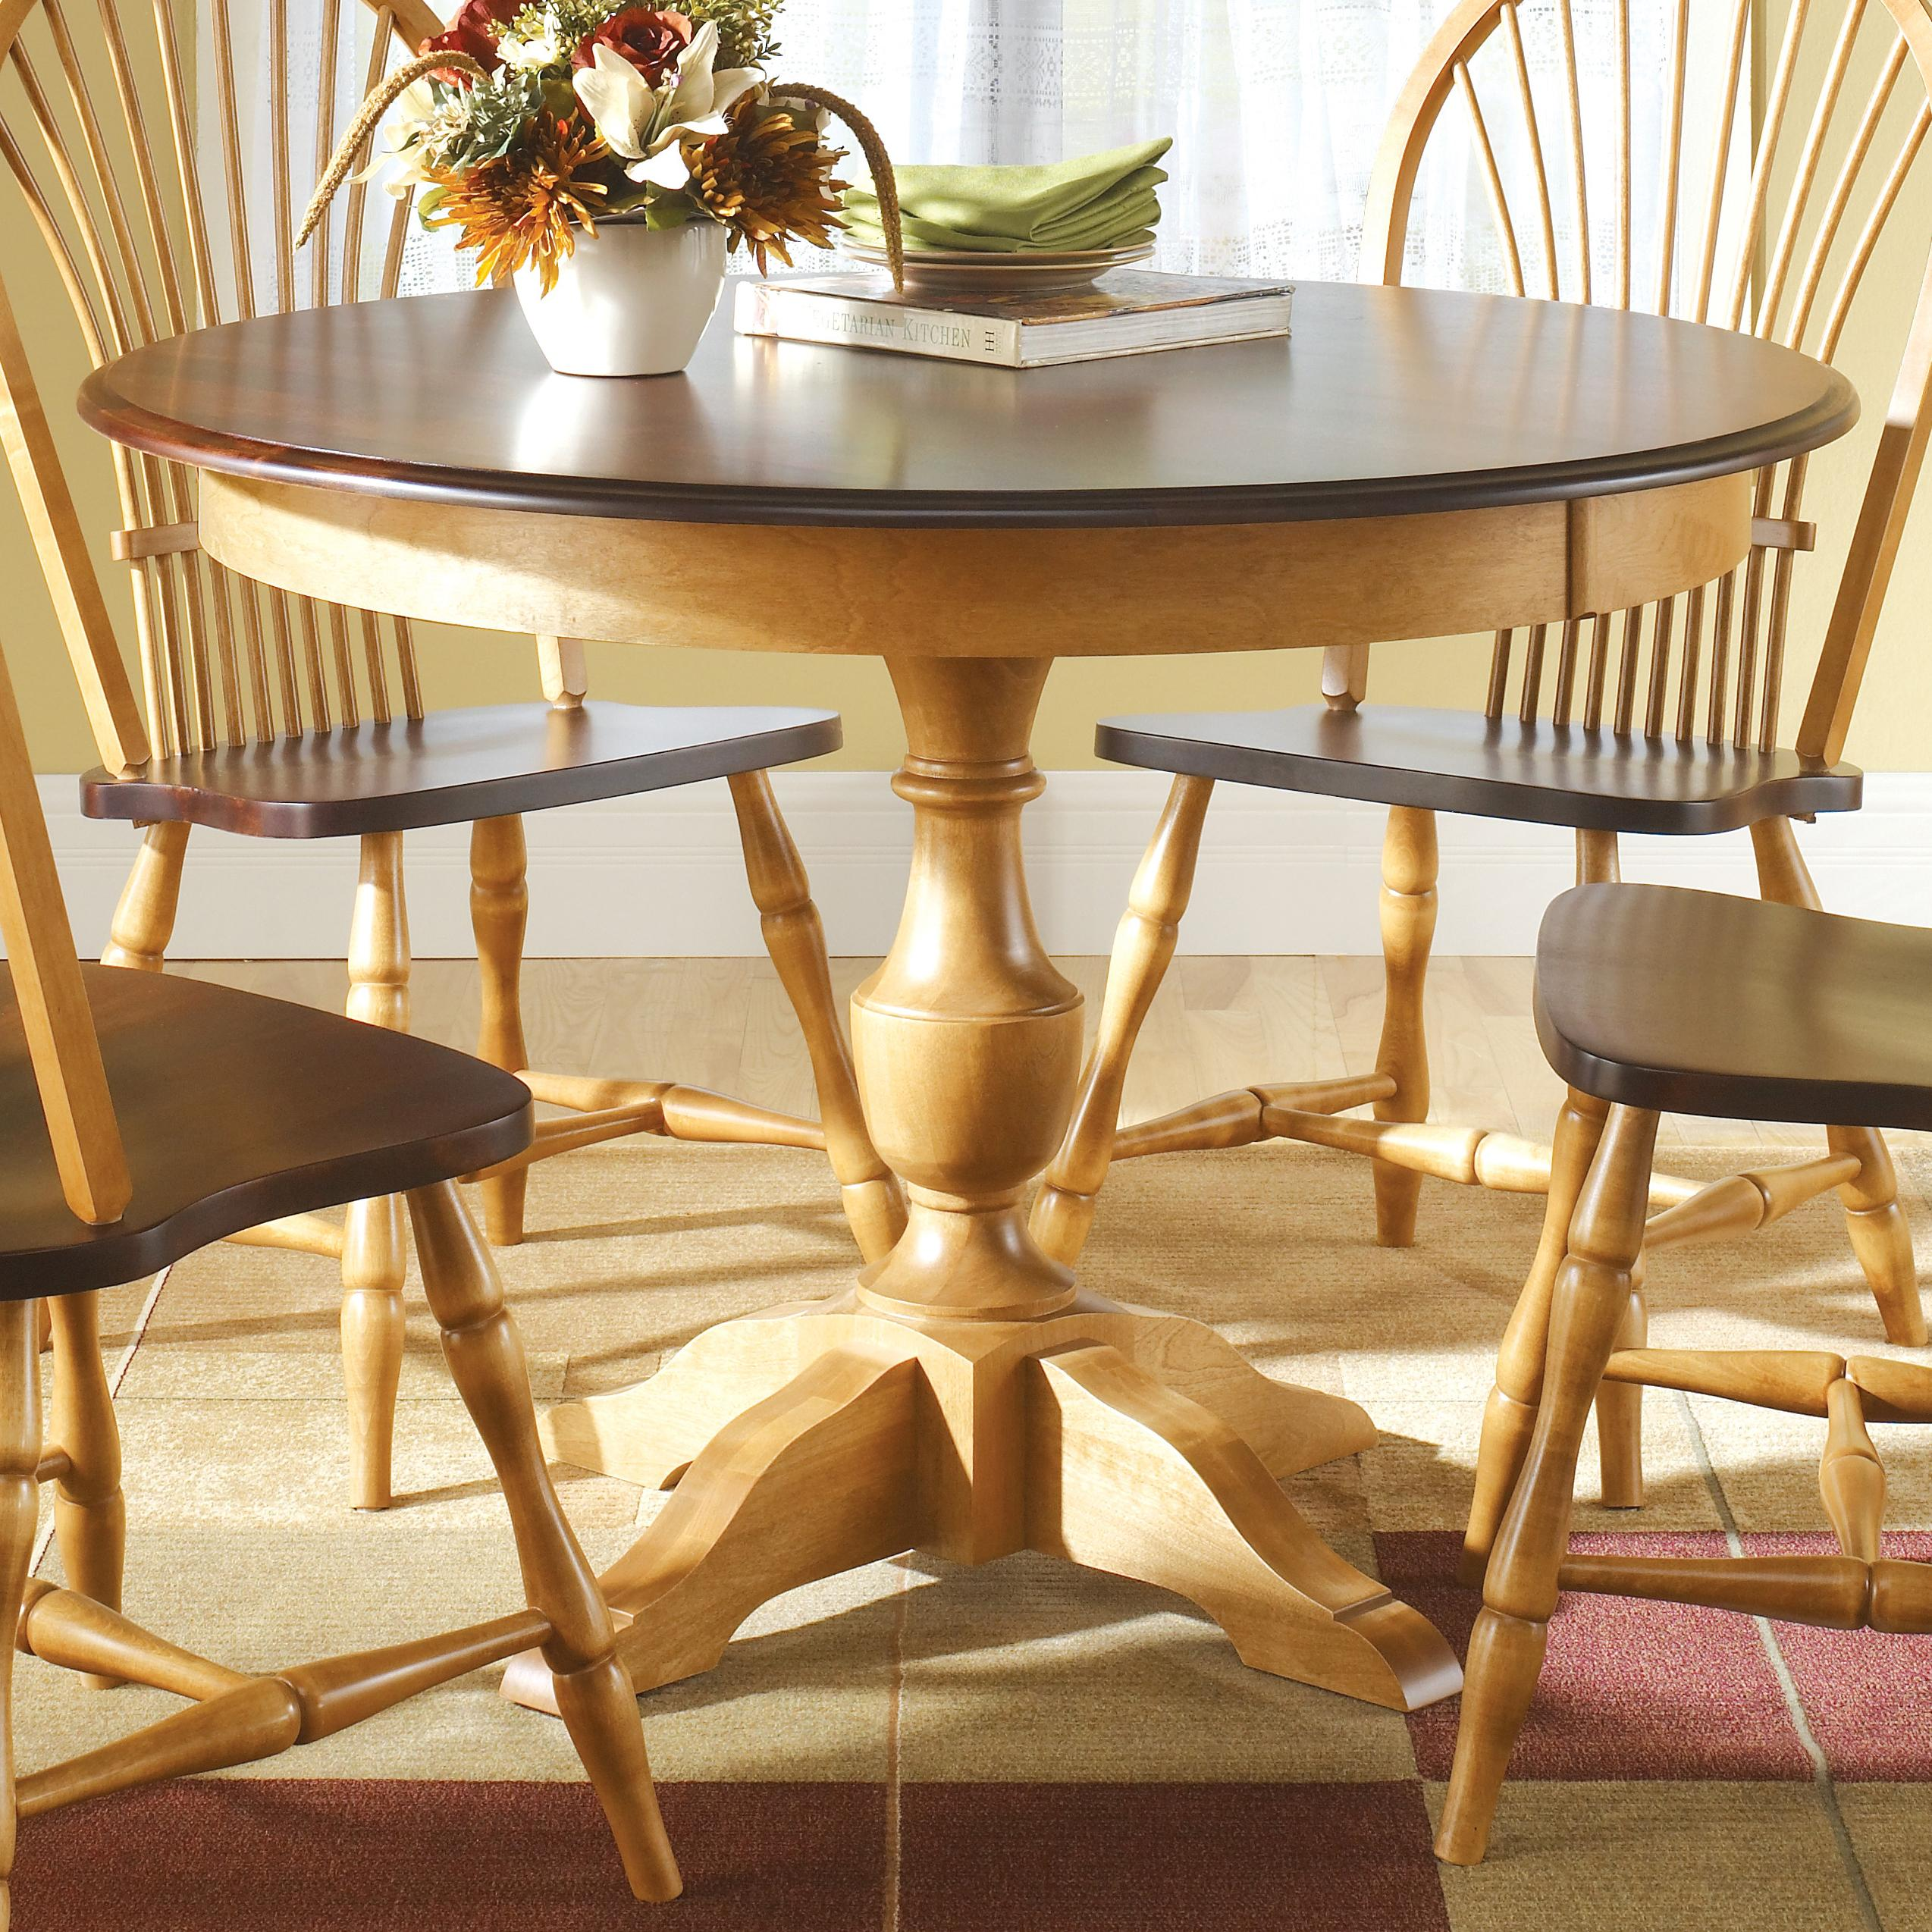 Canadel custom dining customizable round table with for Unique round dining tables